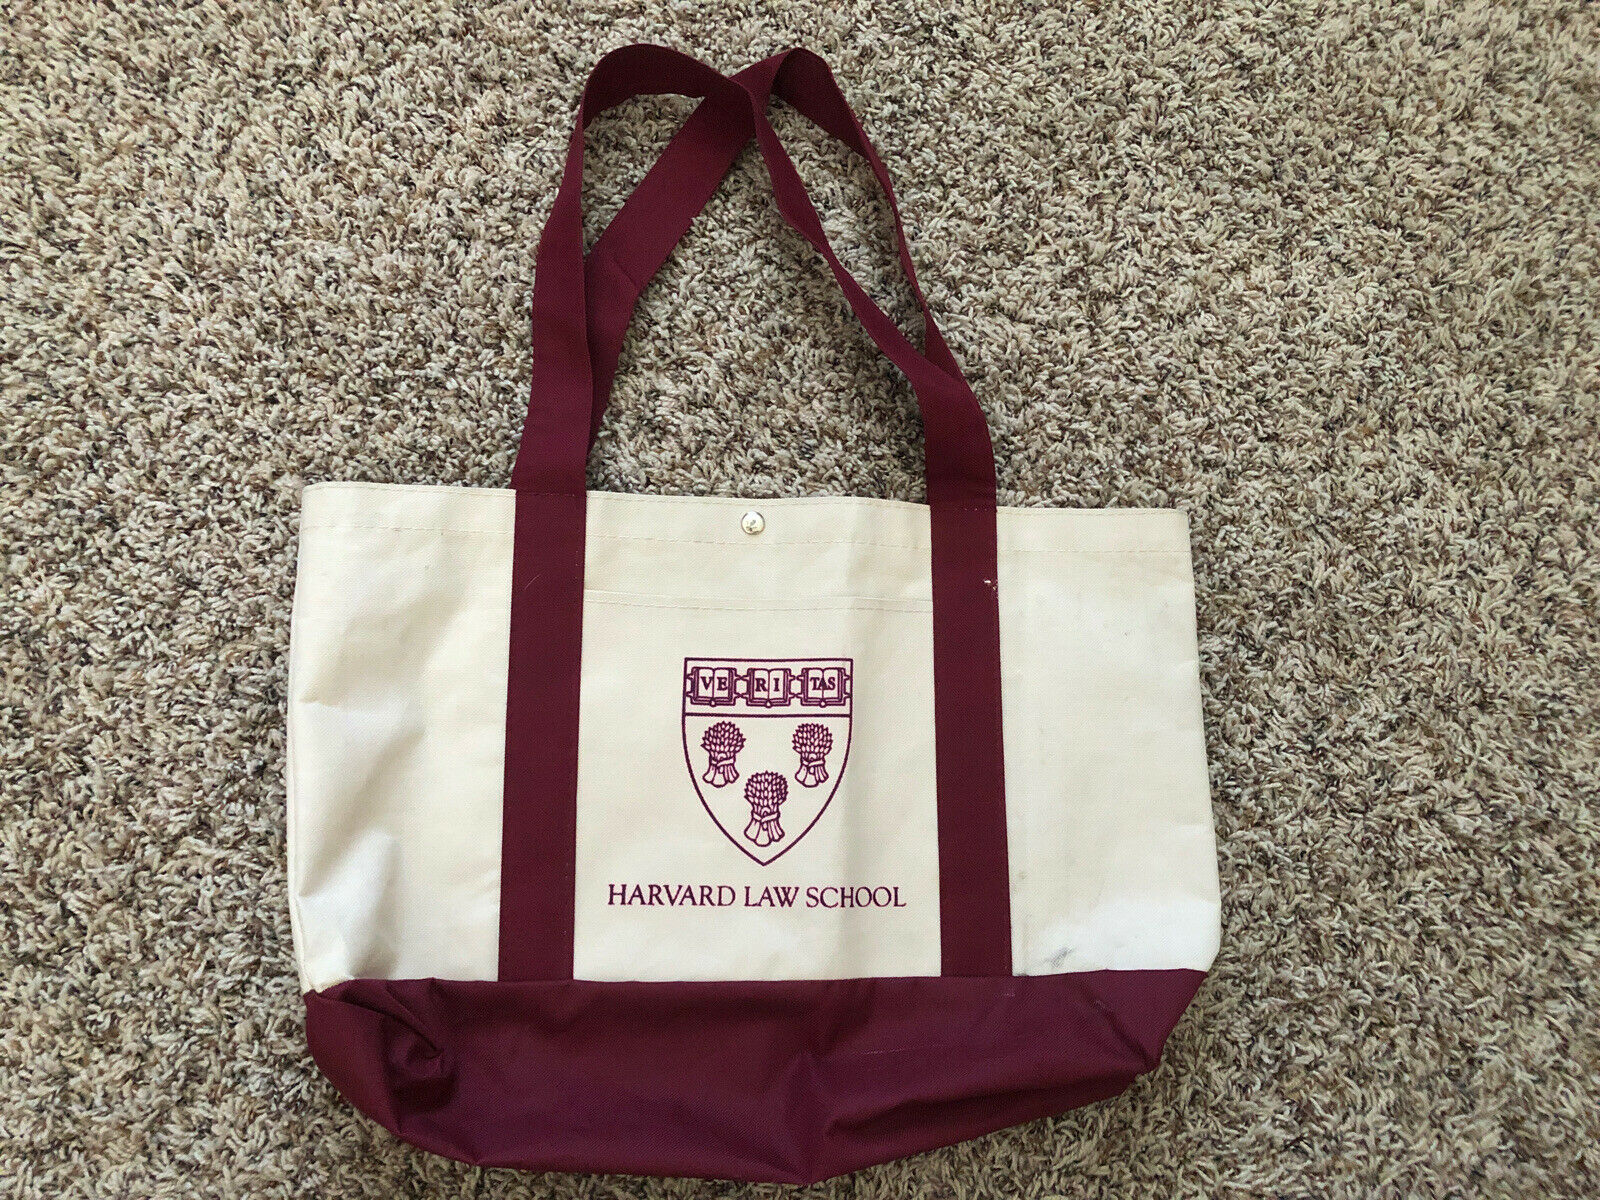 Harvard Veritas Law School Tot Bag 2